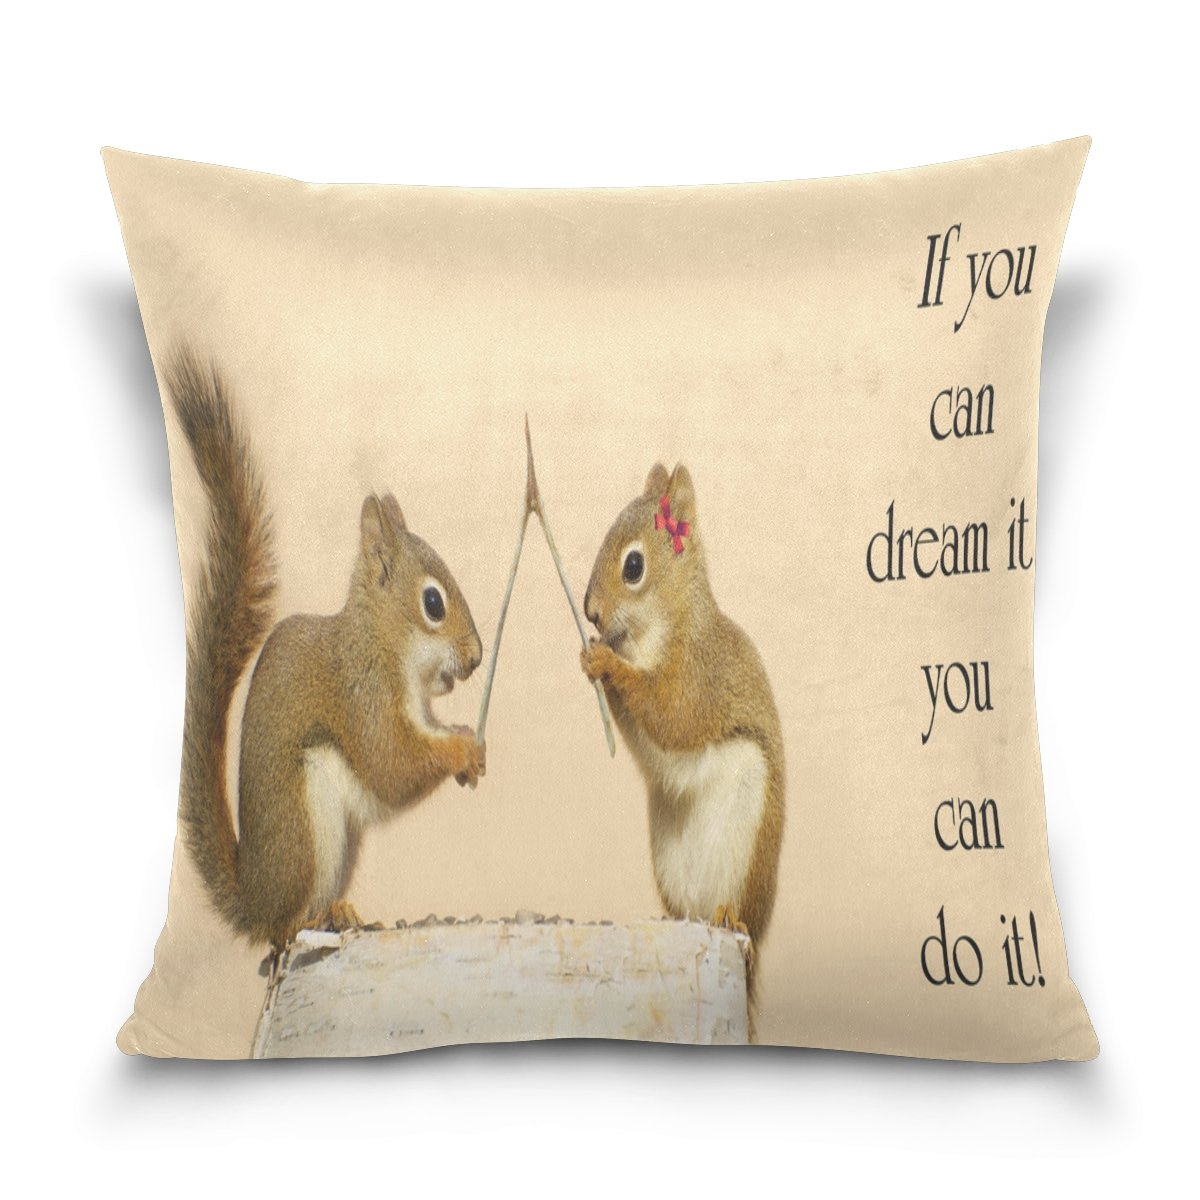 """GIOVANIOR Inspirational Quote With Squirrles Ans Wishbone Pattern Decorative Throw Pillowcase Cushion Pillow Cover 16"""" x 16"""" for Couch, Bed, Sofa or Patio - Only Case, Double Sides, No Insert"""